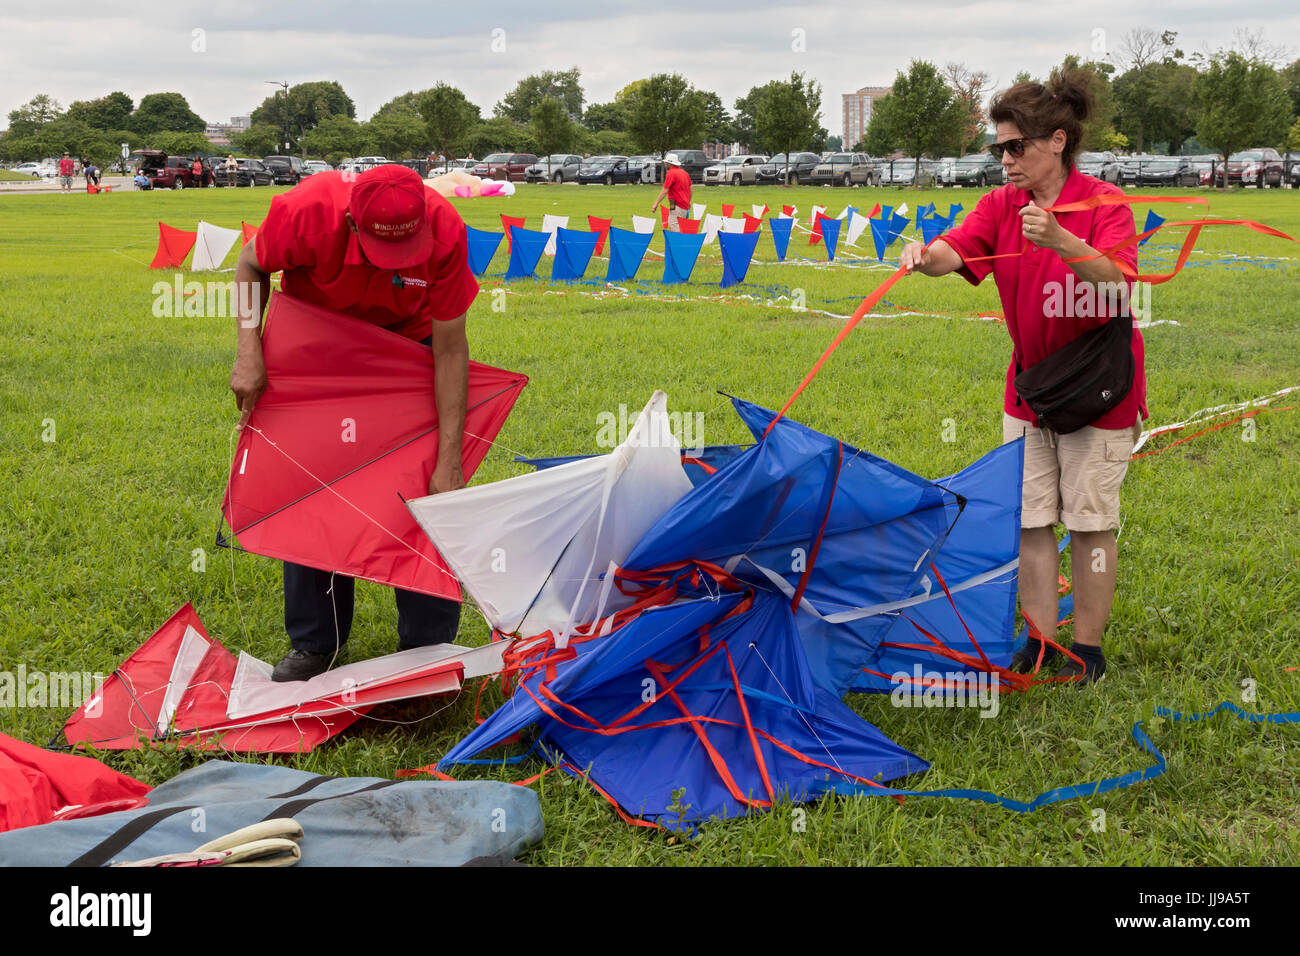 Detroit, Michigan - Members of the Windjammers Kite Team untangle a string of 13 linked kites flown by the team - Stock Image